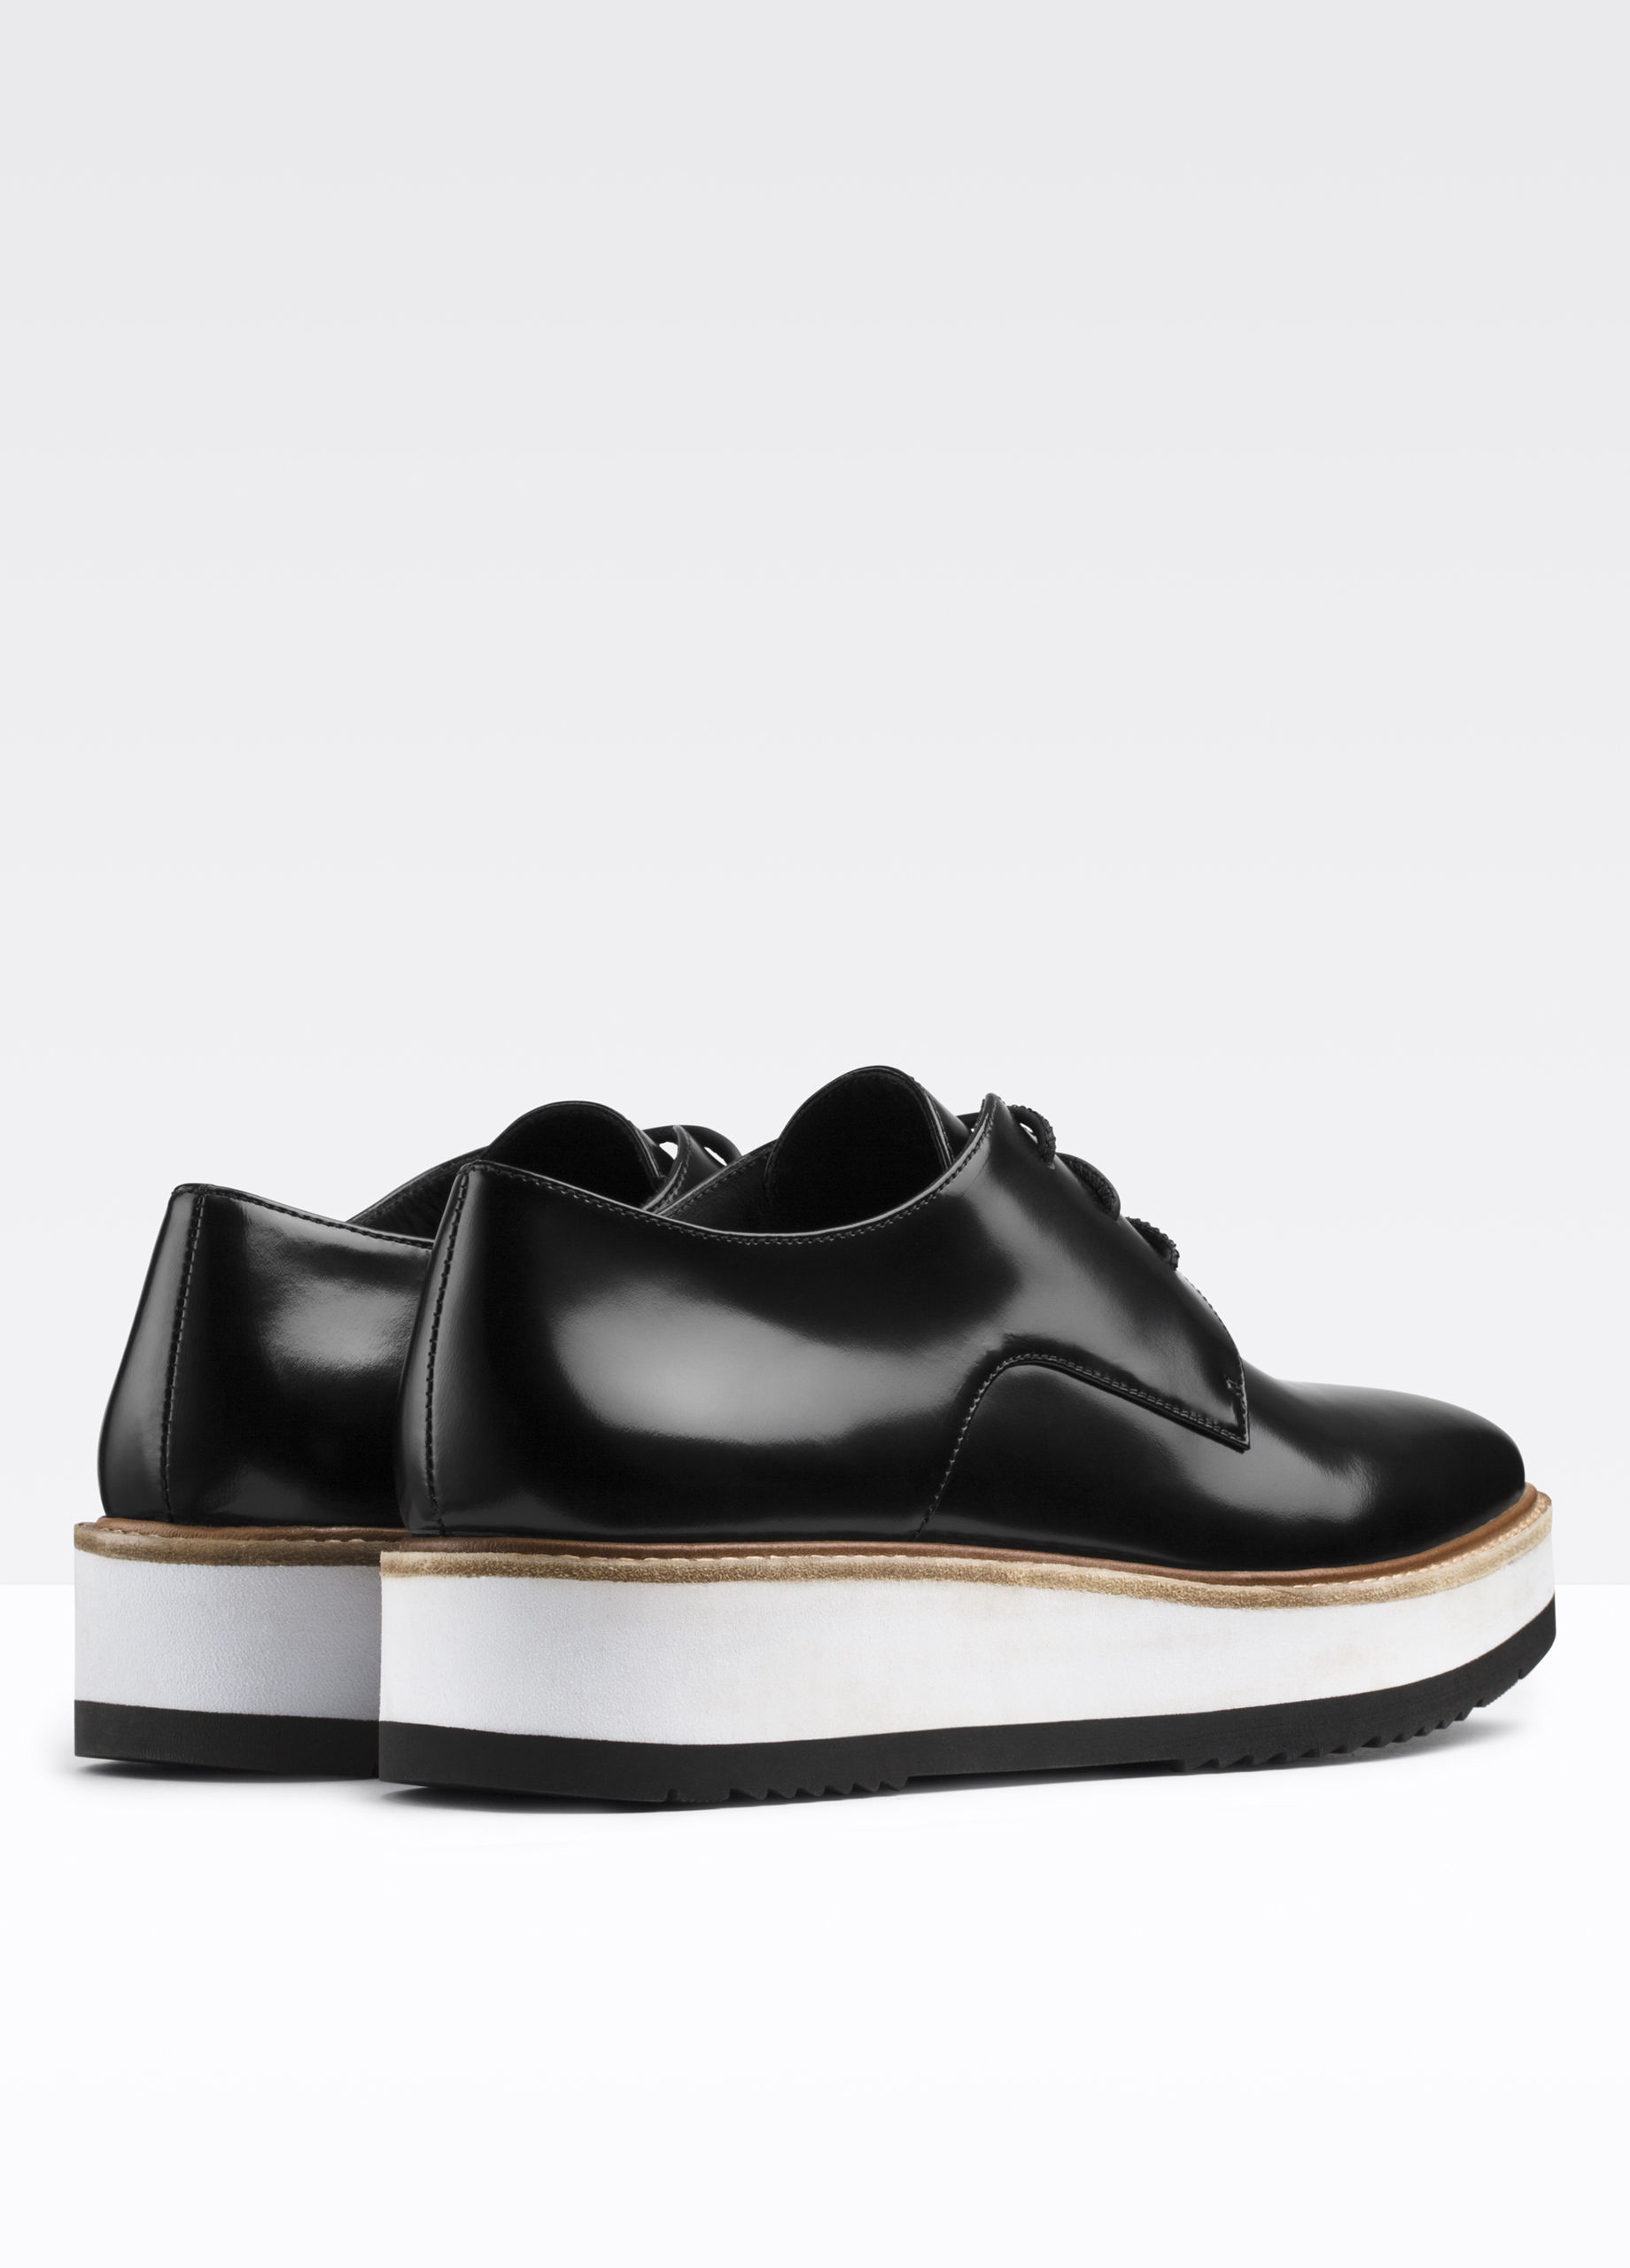 Vince Reed Platform Leather Loafer in Black